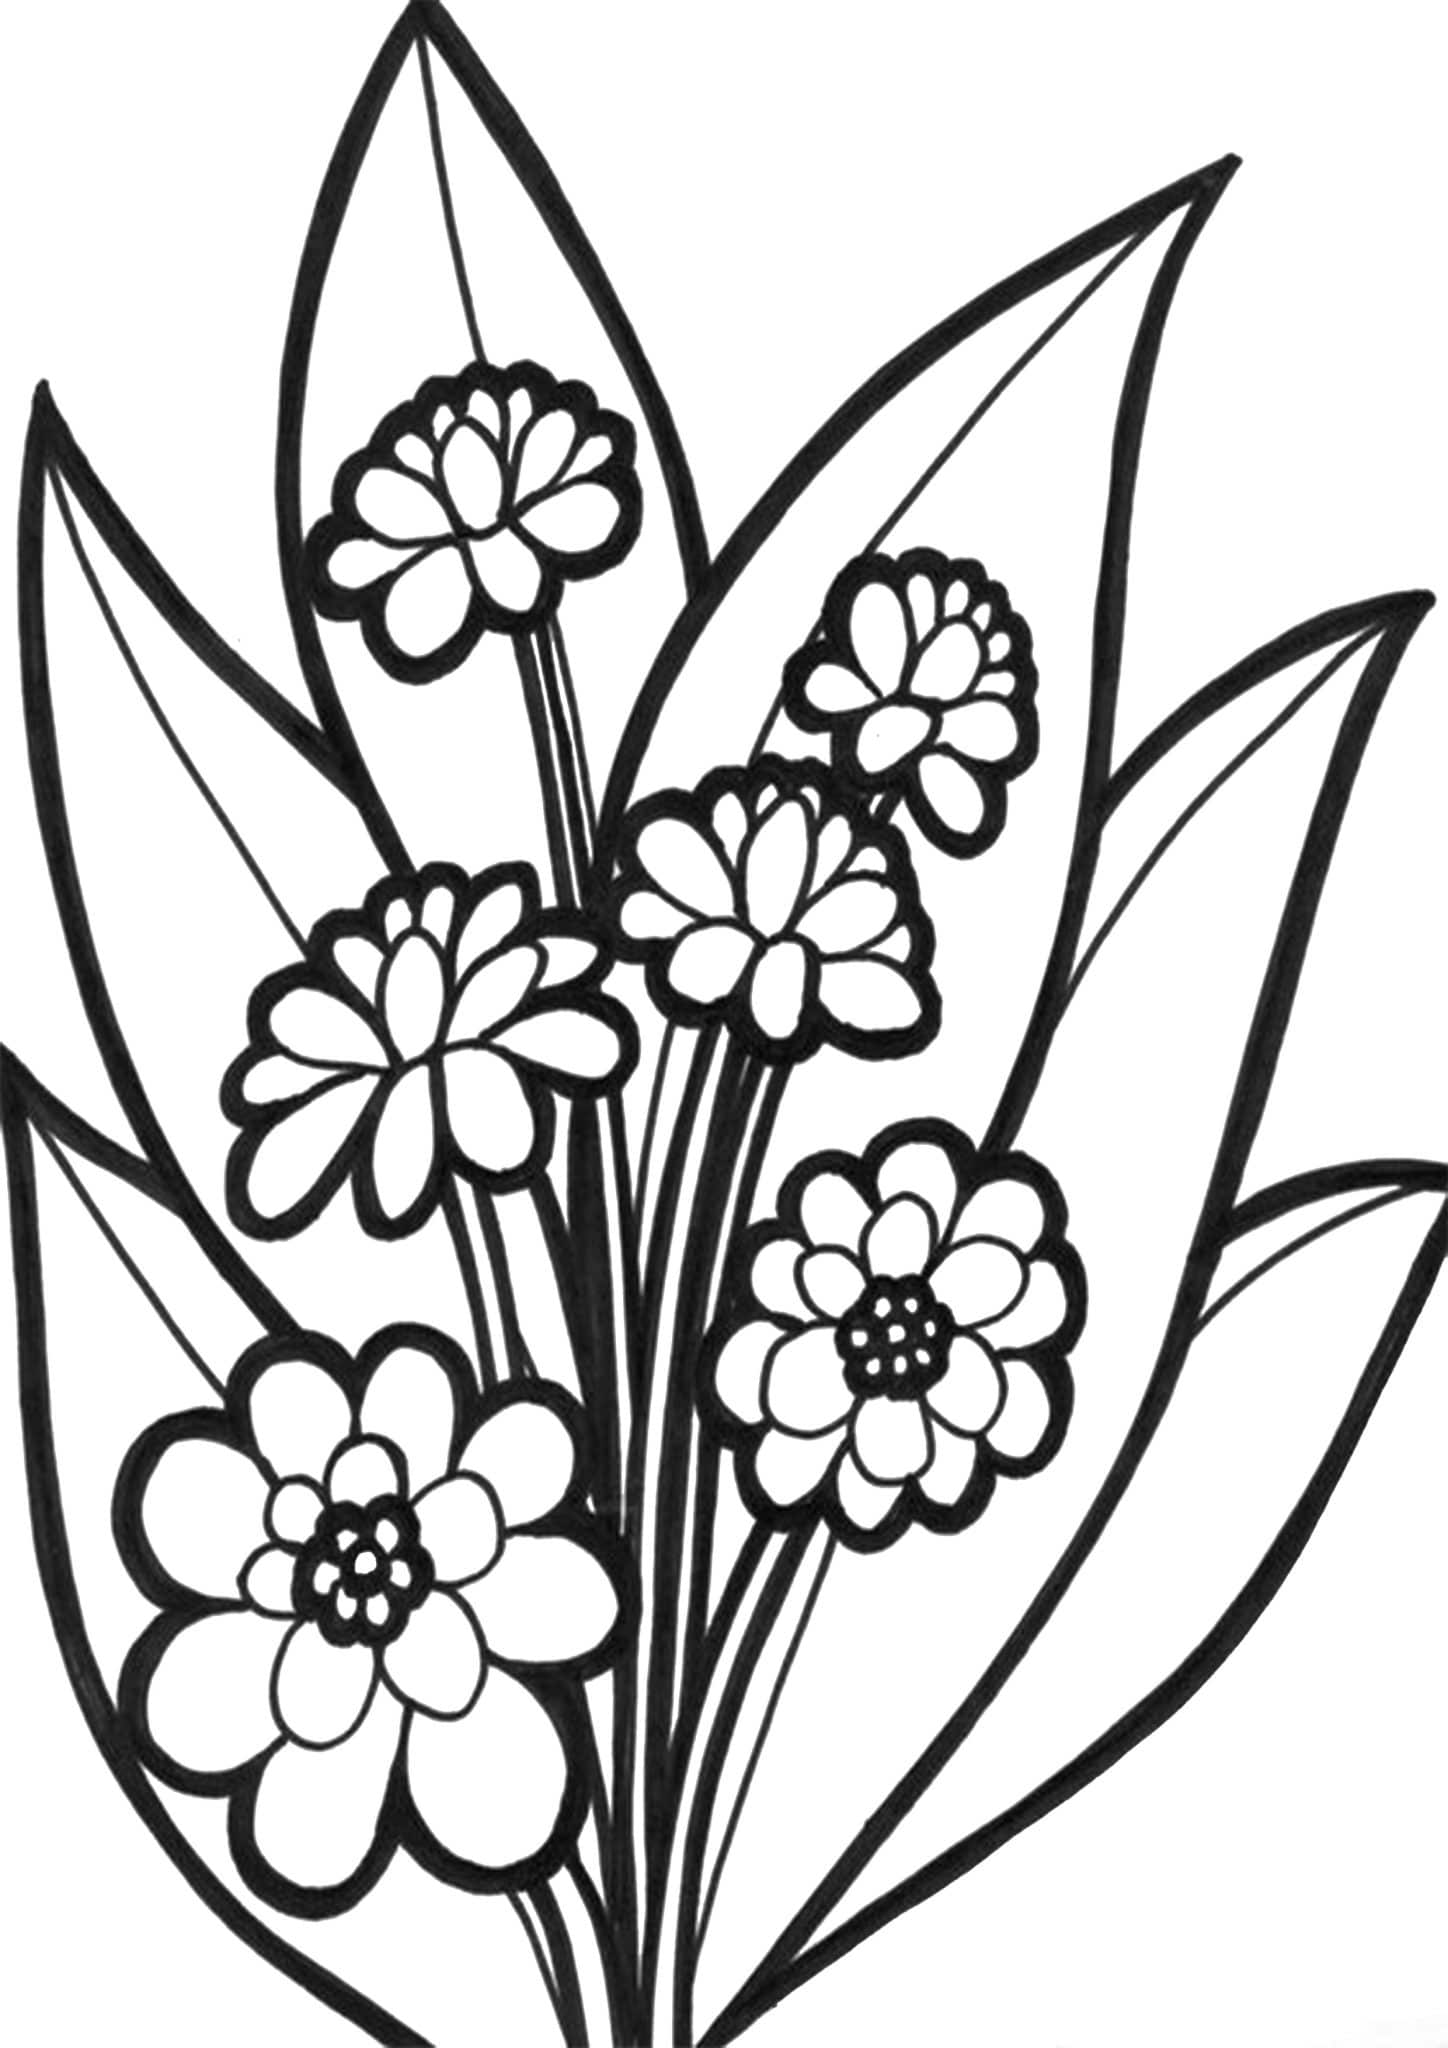 beautiful flowers coloring pages beautiful rose flower for you coloring page netart flowers coloring beautiful pages